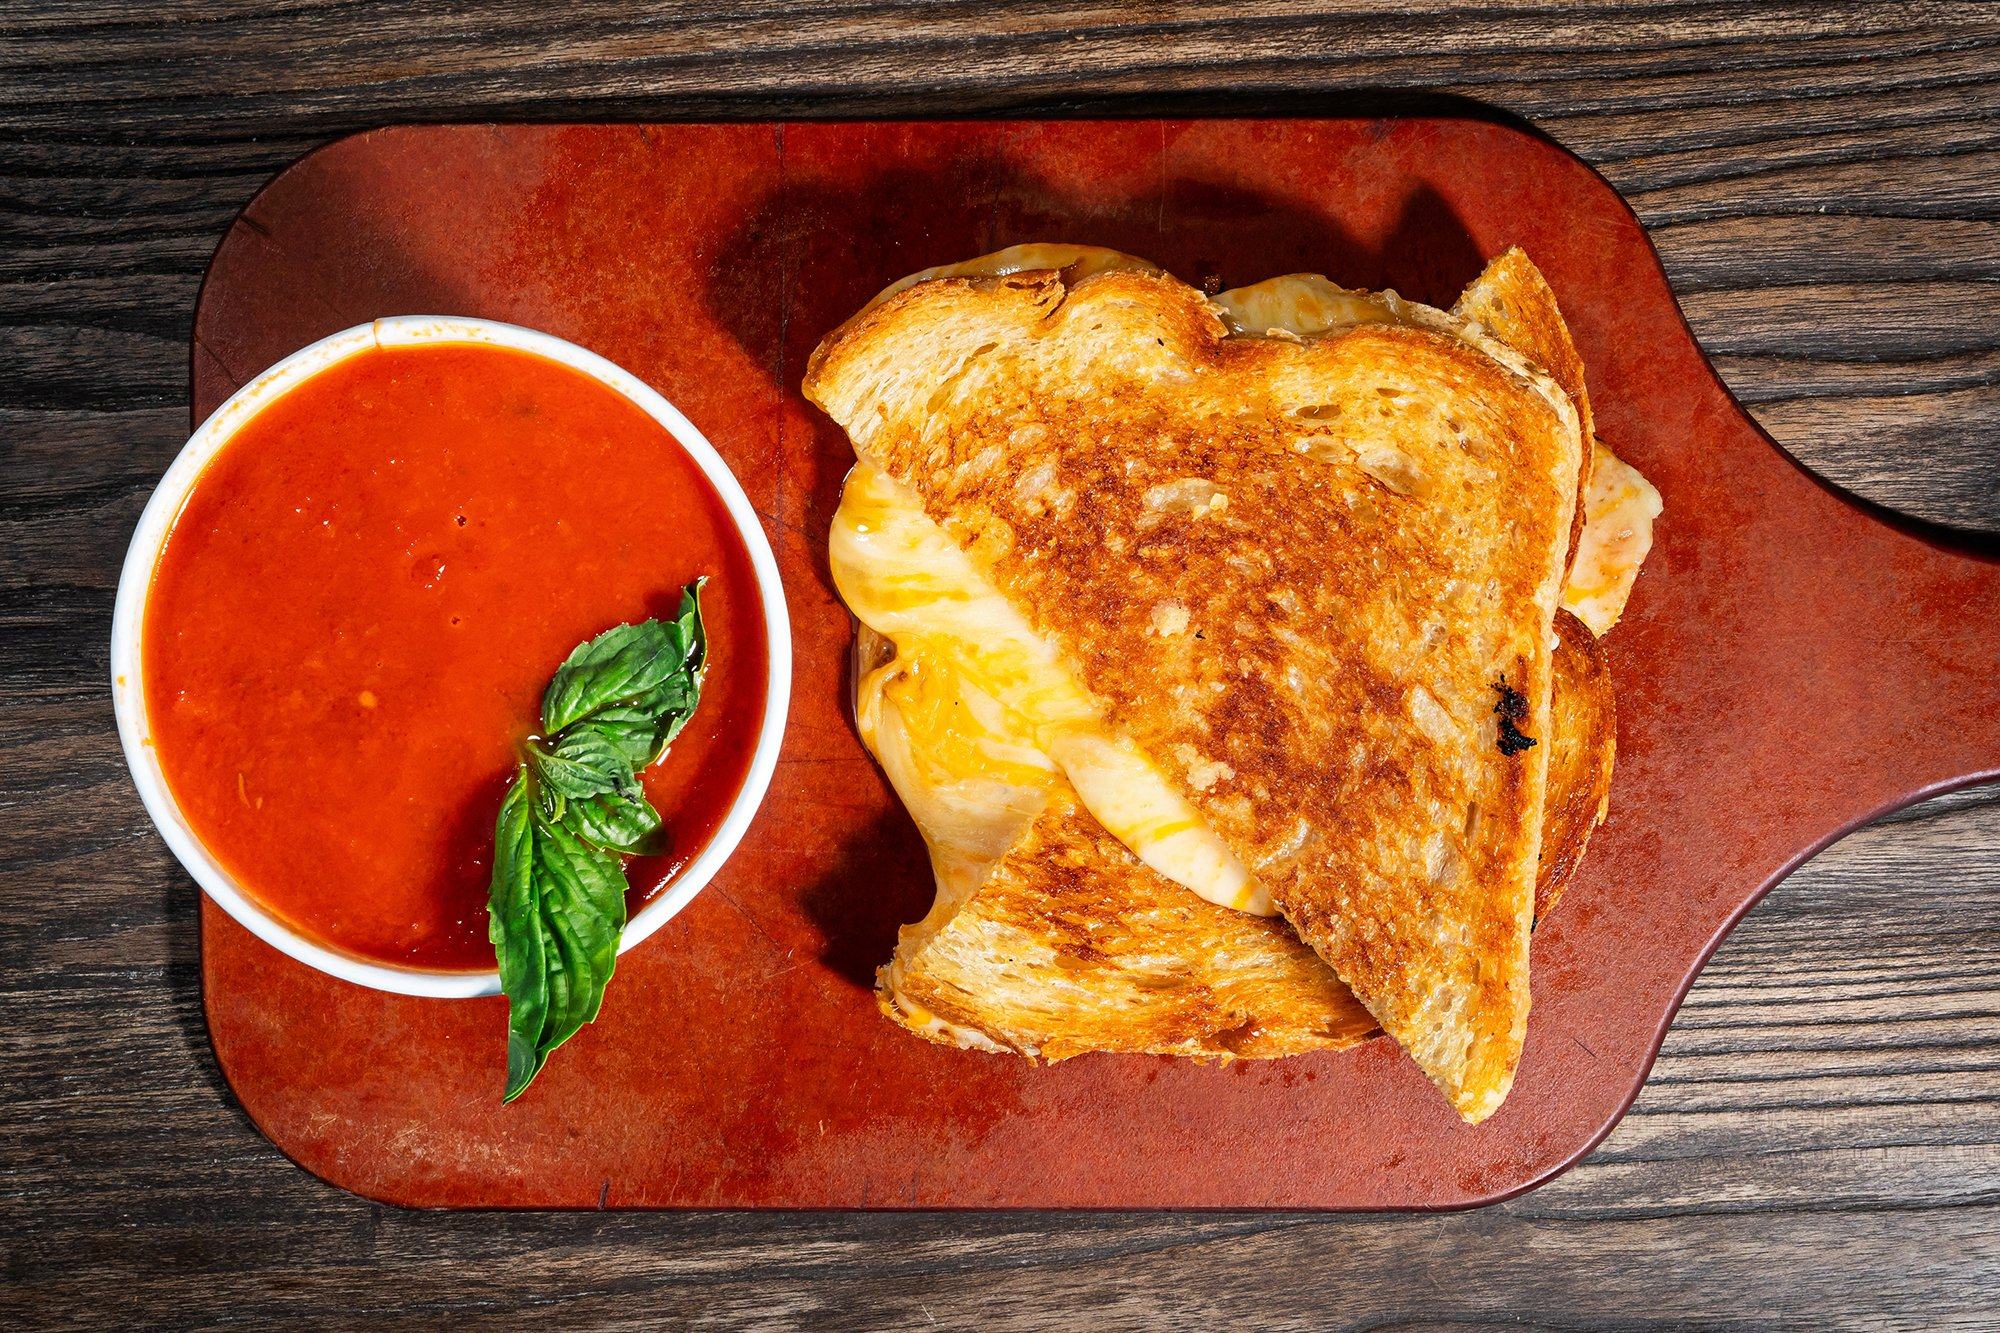 Colada Shop serves coffee and cocktails, however you want to start the day. Gooey grilled cheese and tomato soup at Glen's Garden Market. Photograph by Scott Suchman